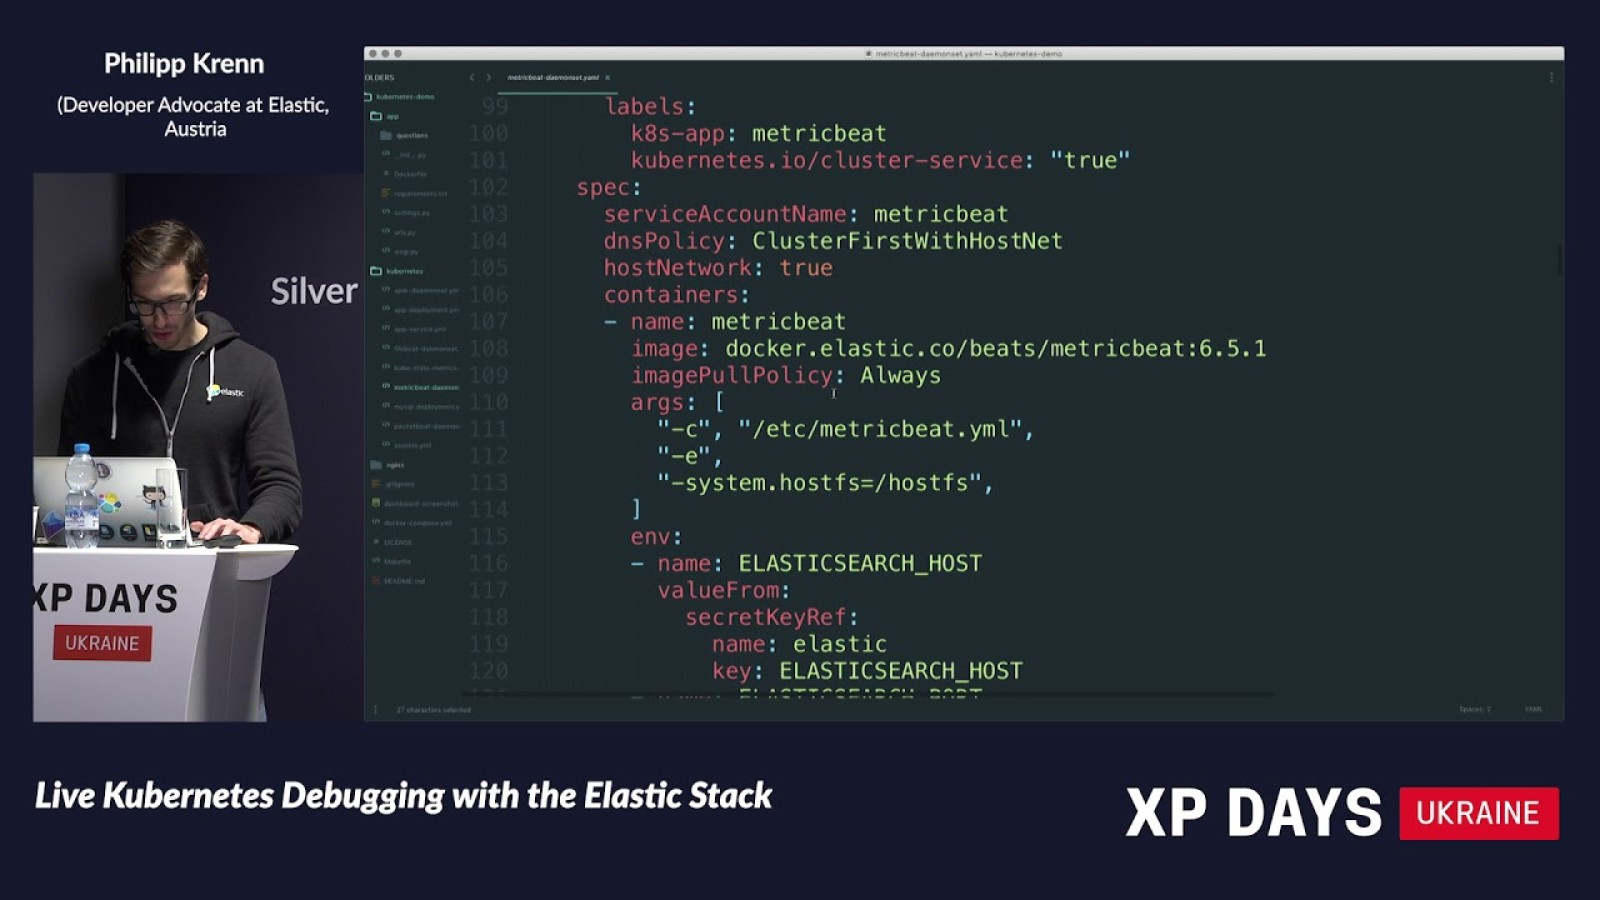 Live Kubernetes Debugging with the Elastic Stack